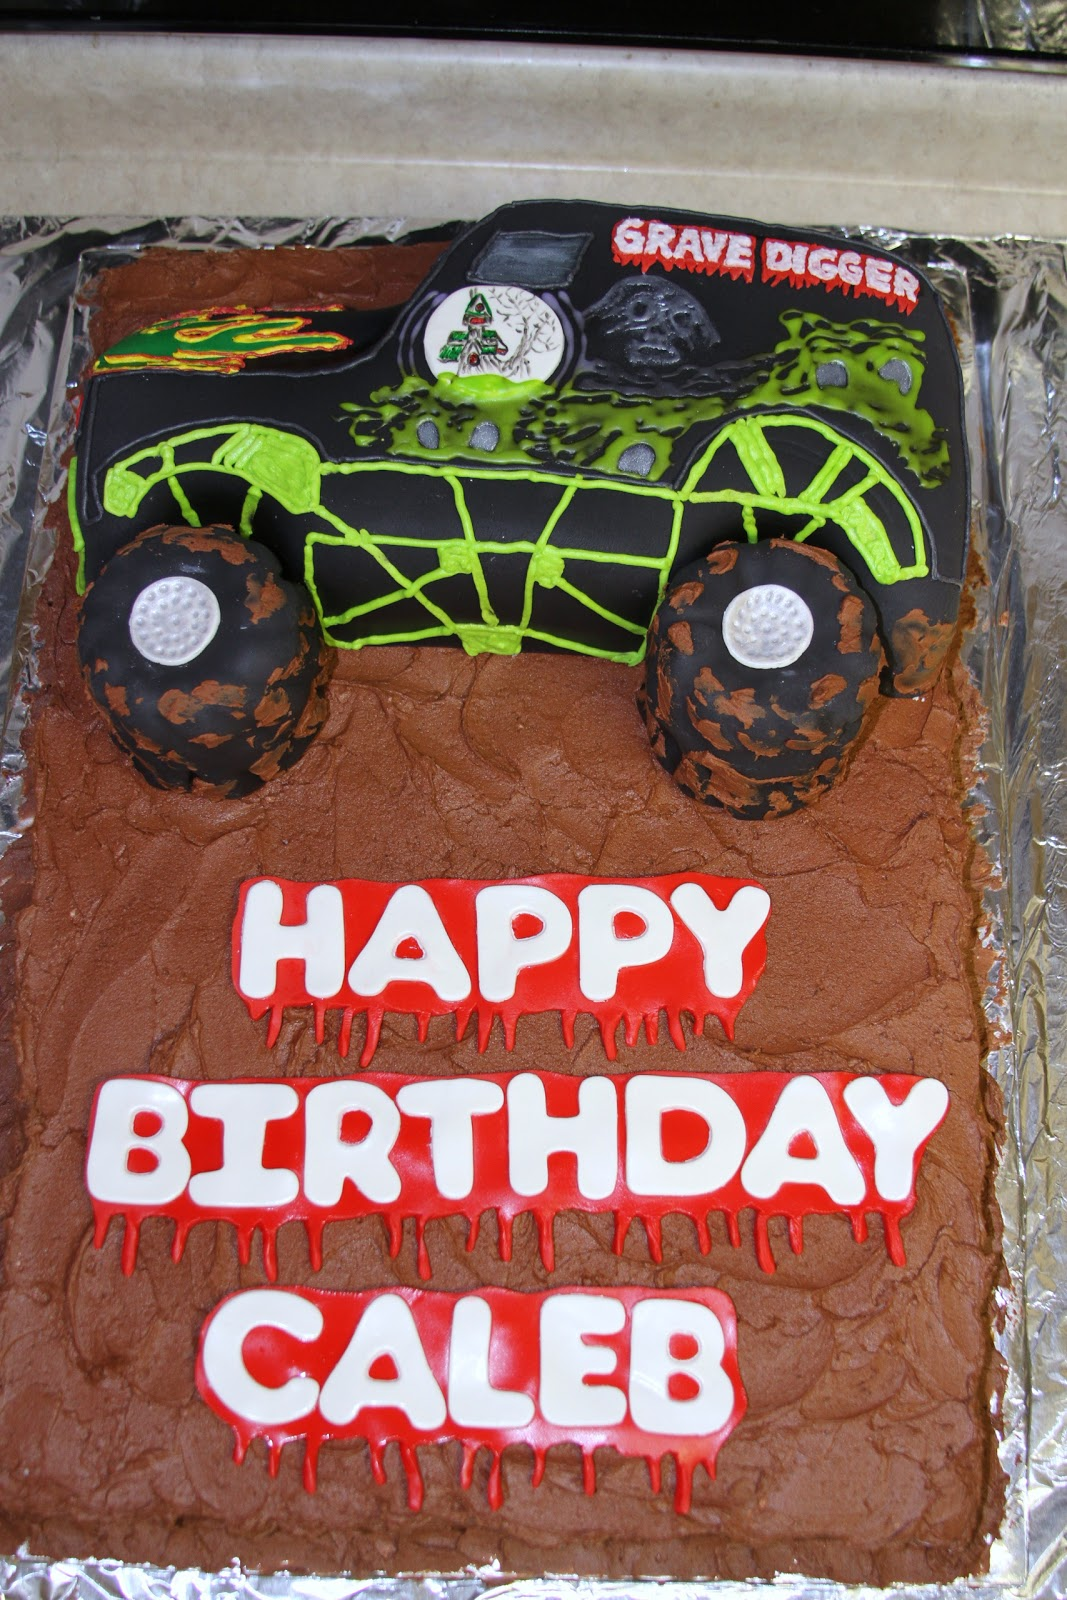 Michele Robinson Cakes: Grave Digger Birthday Cake